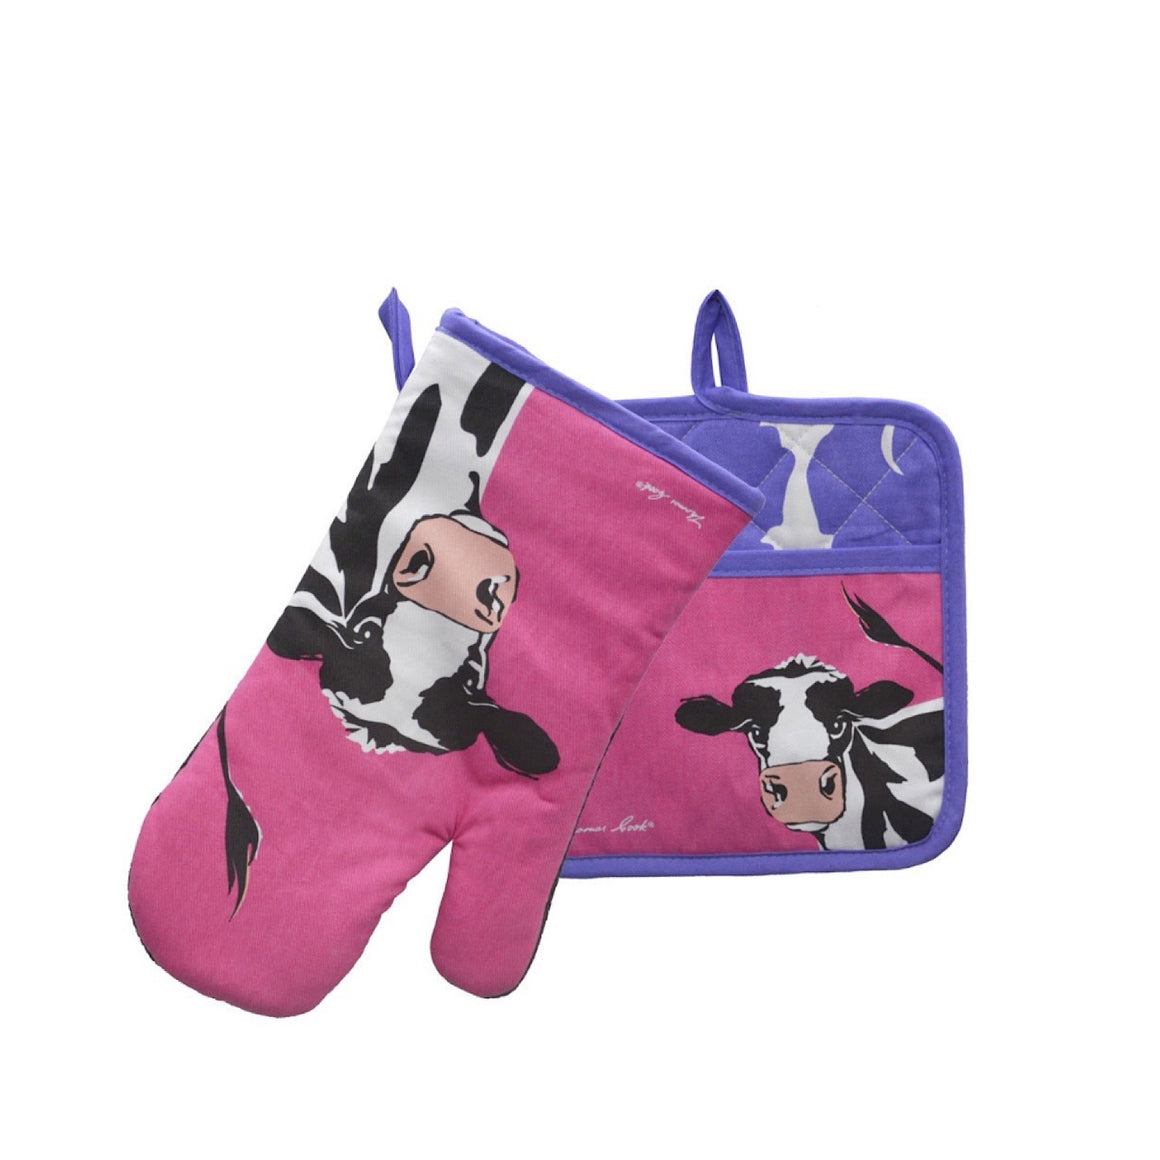 Thomas Cook Oven Mitt & Pot Holder Set Cleo Cow TCP2922096